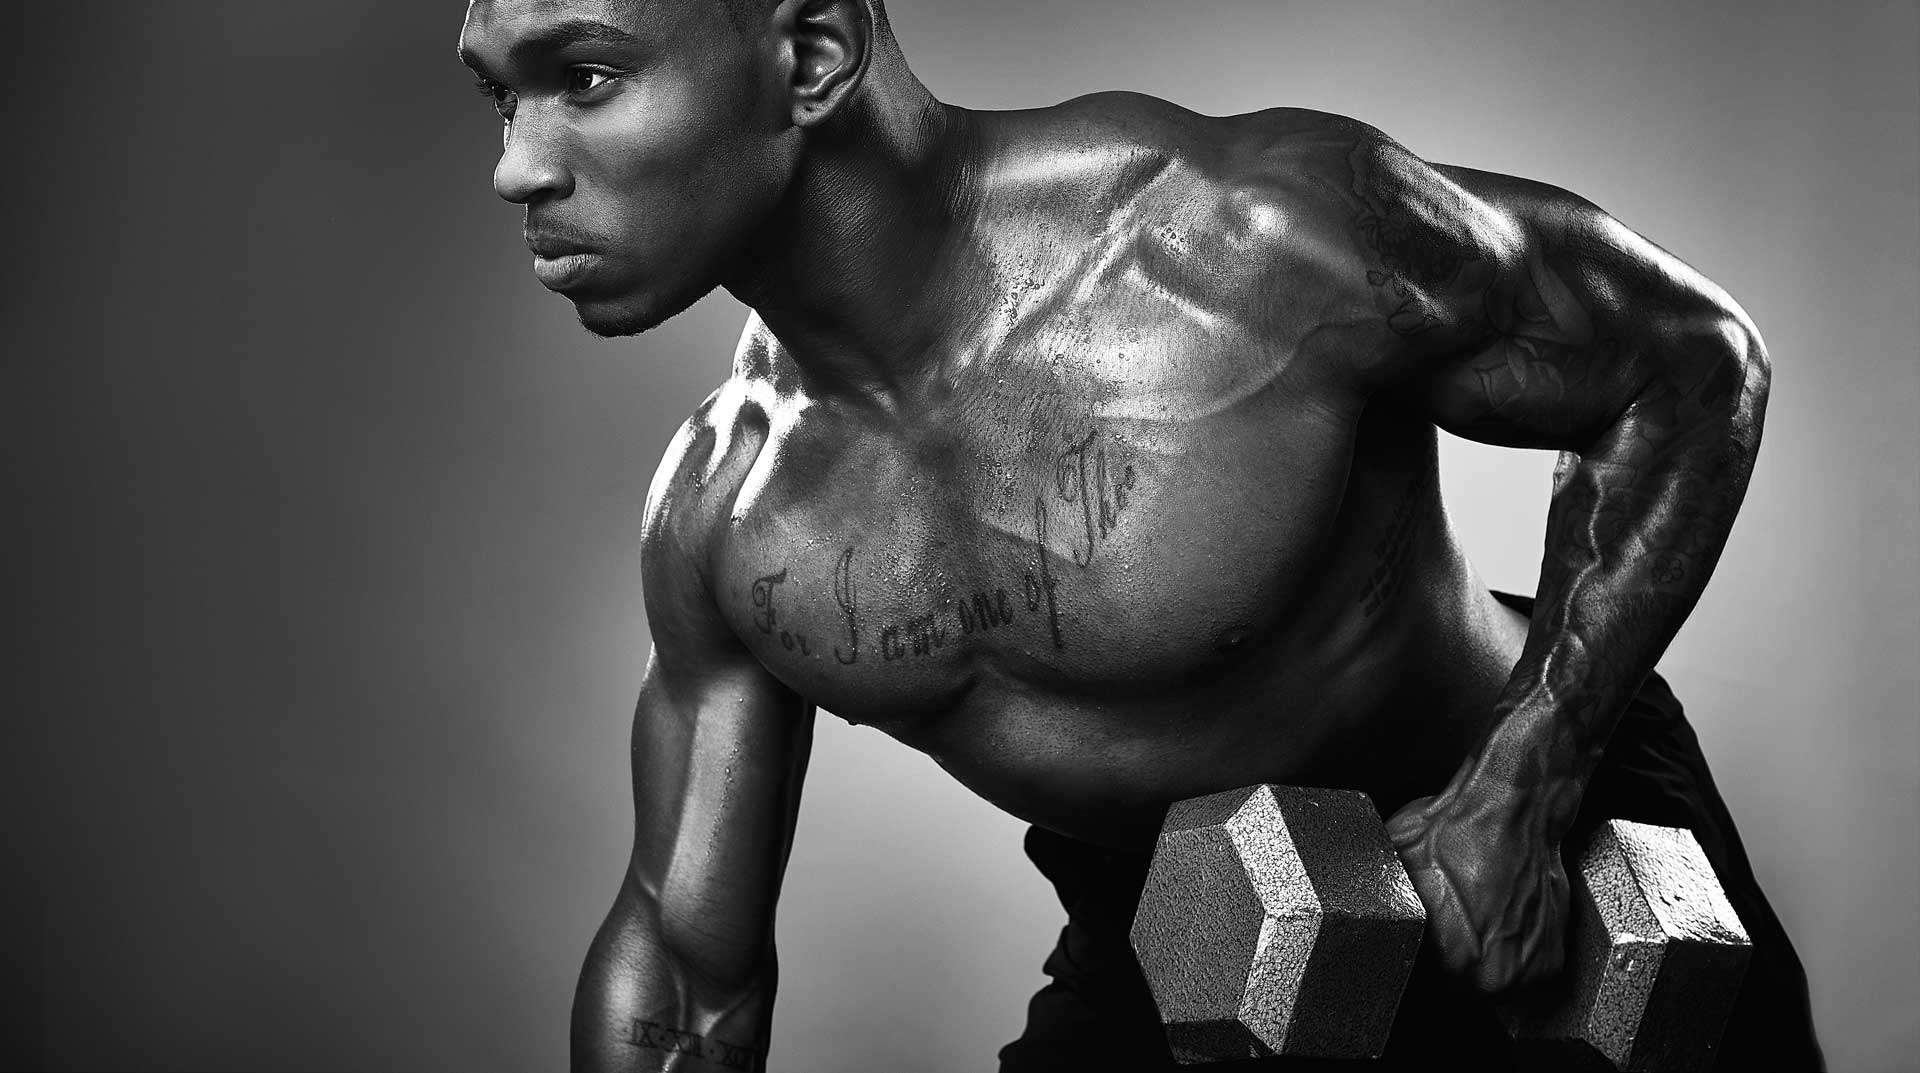 Personal trainer lifts dumbbell. Black and white photo by Antonio Carrasco